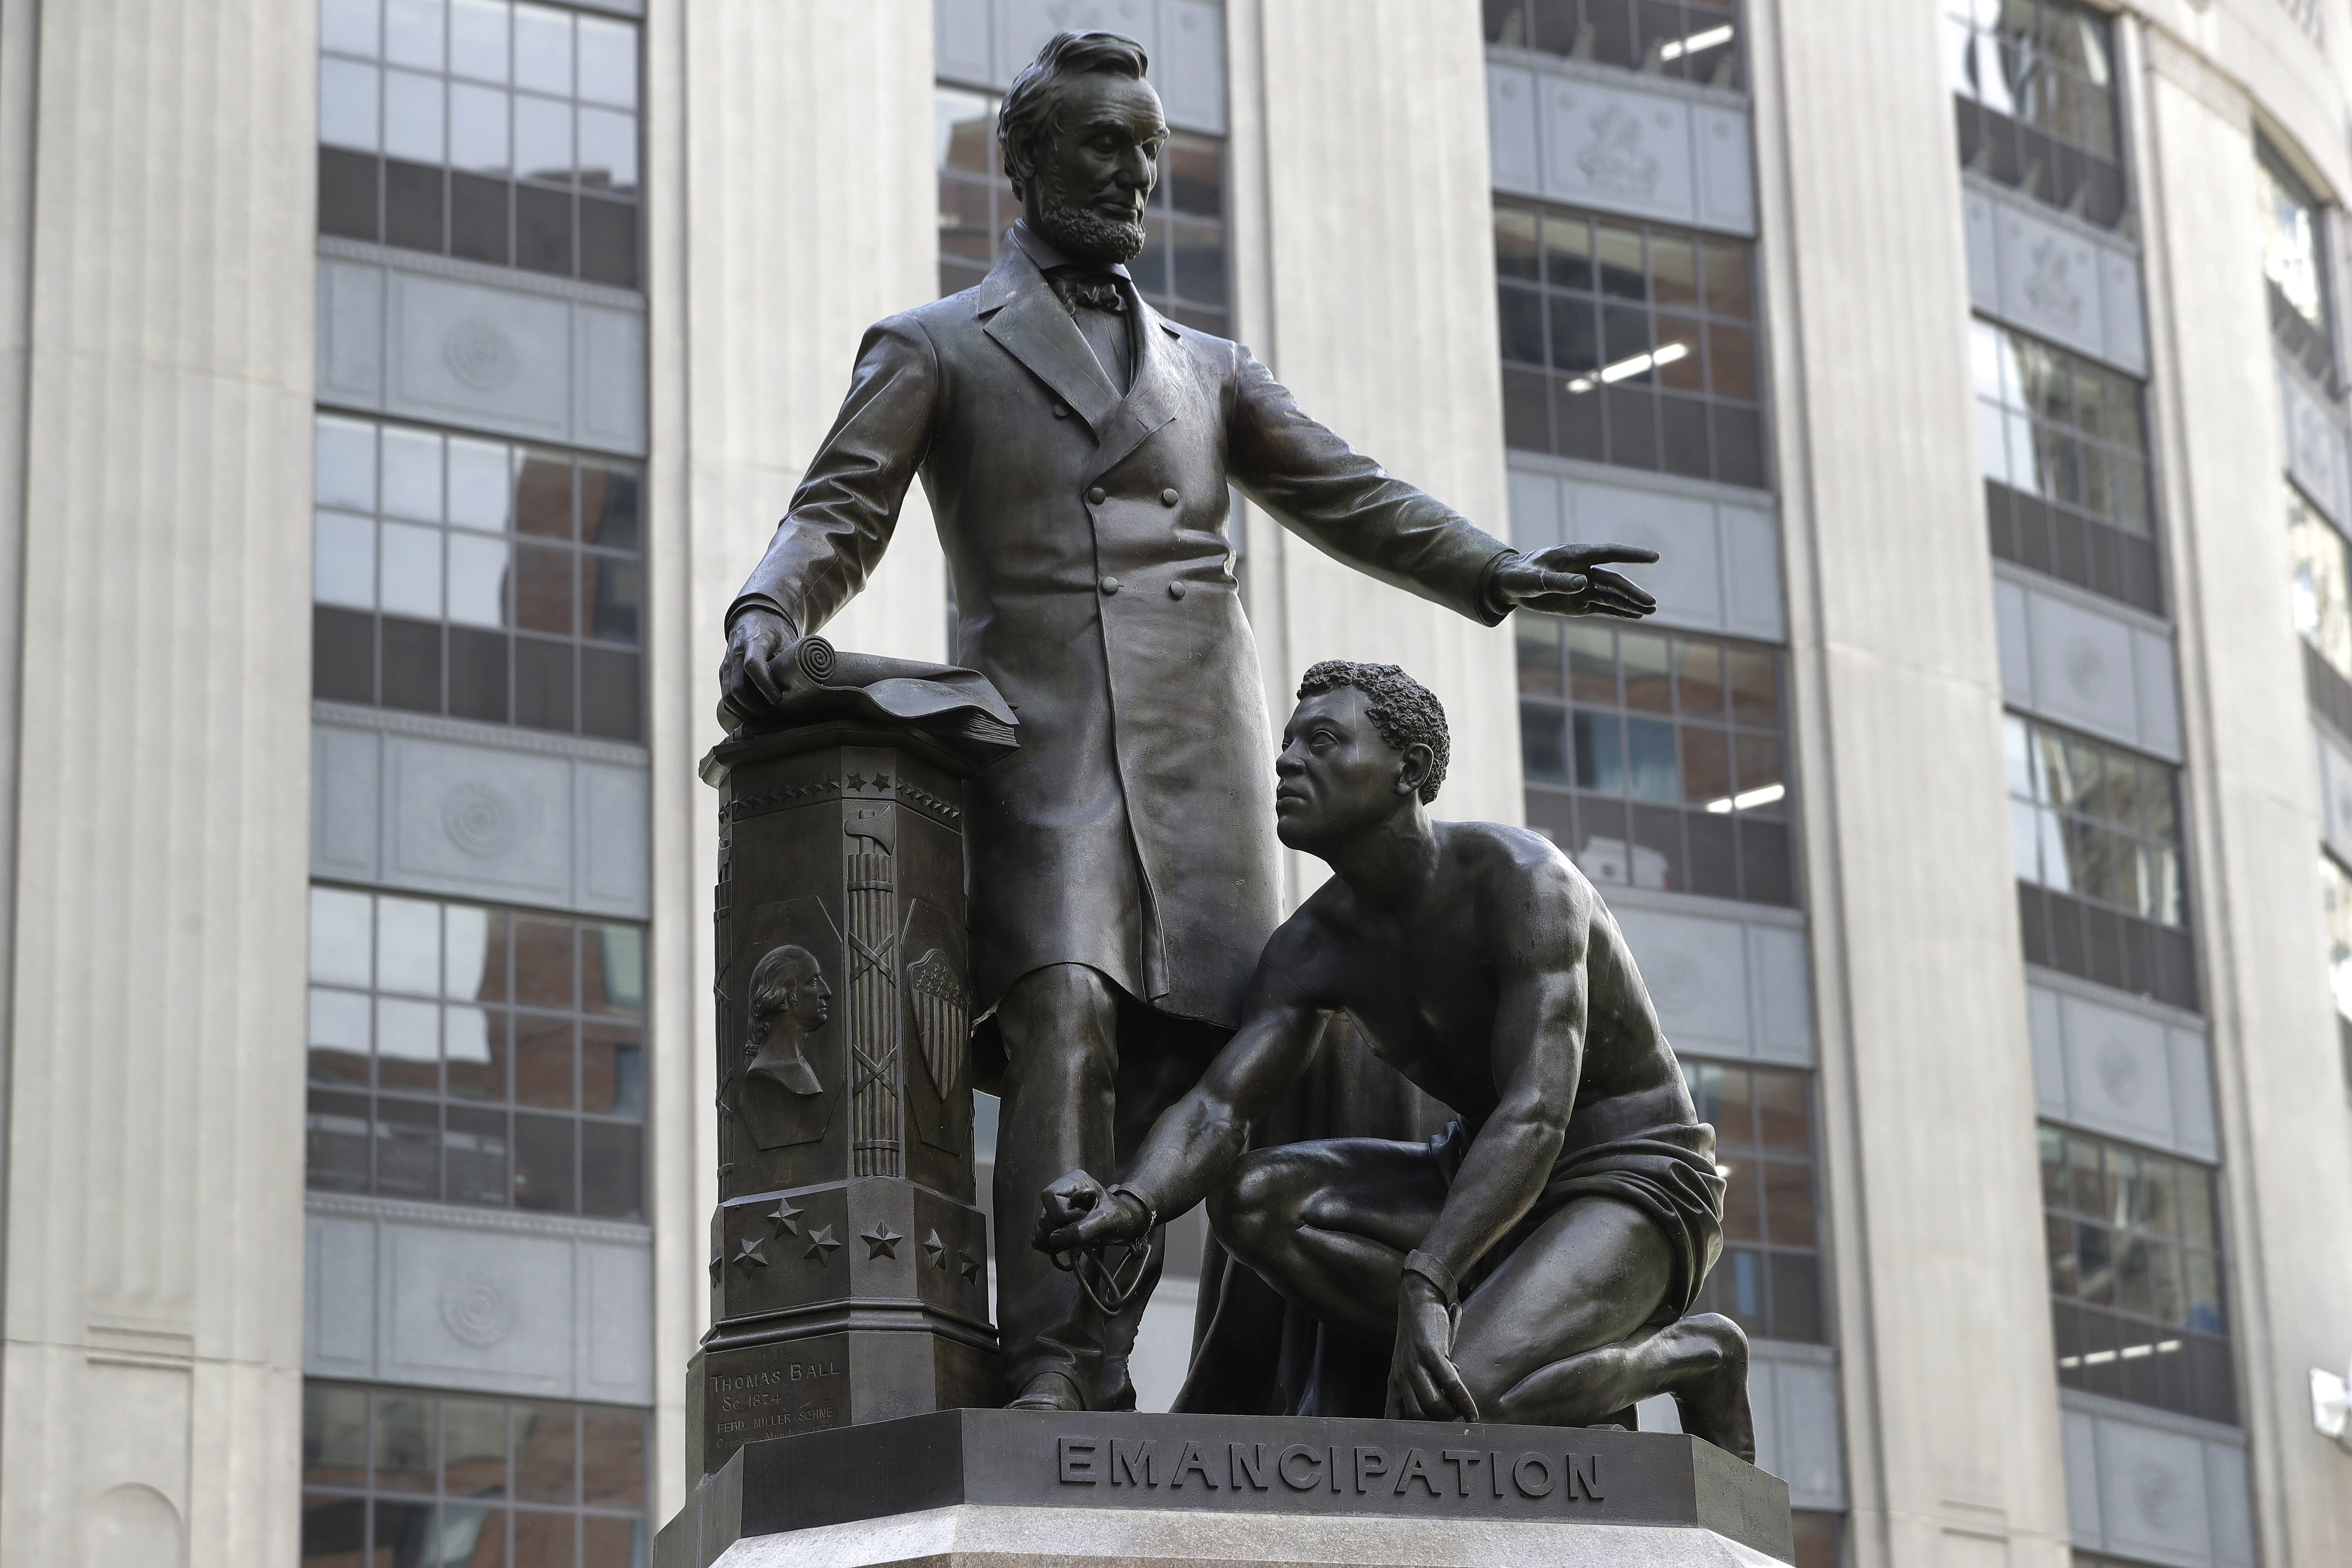 A statue that depicts a freed slave kneeling at Abraham Lincoln's feet rests on a pedestal in Boston on June 25, 2020.